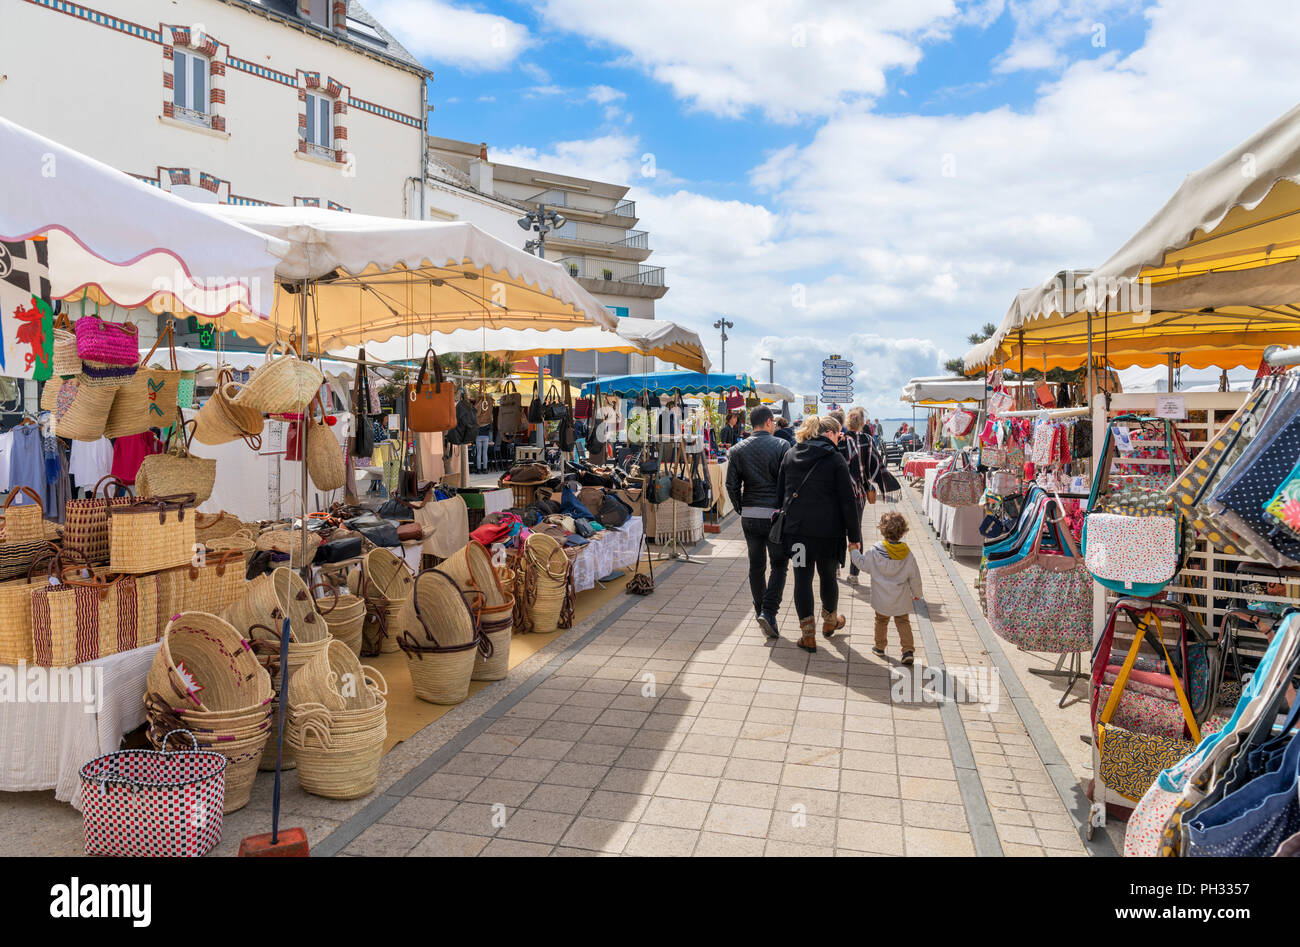 French Markets Stock Photos & French Markets Stock Images